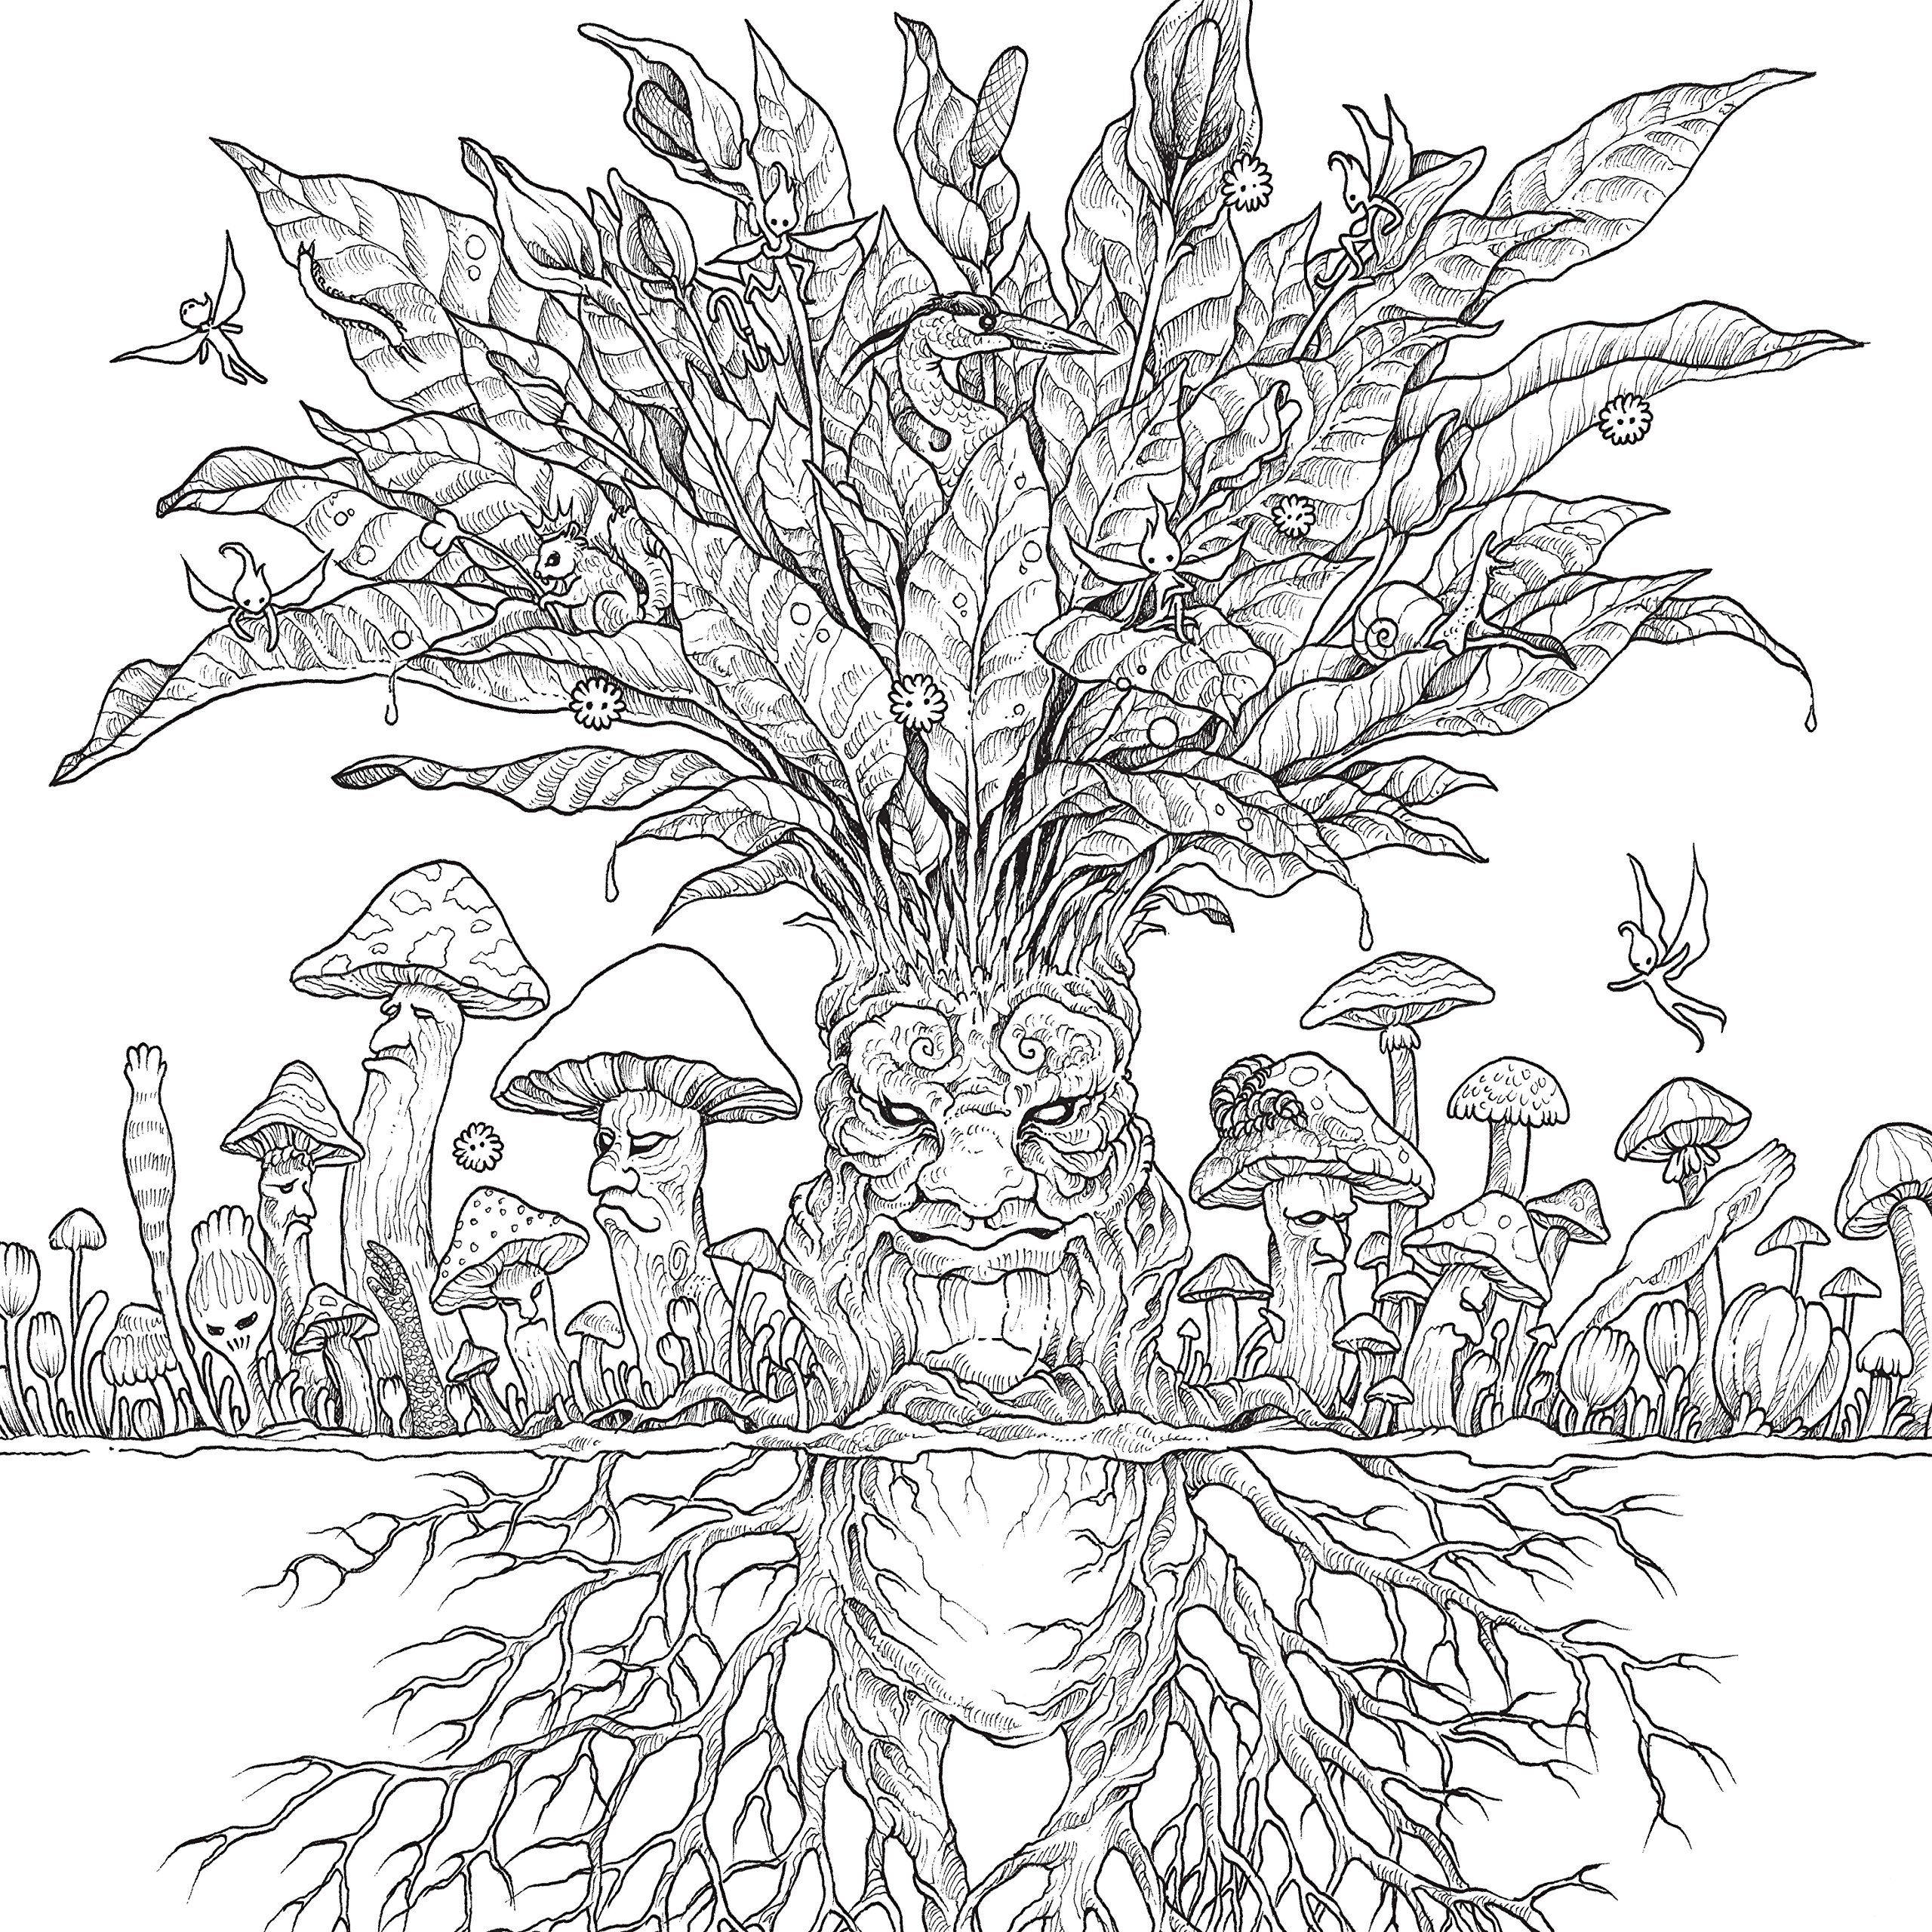 Fantomorphia An Extreme Colouring And Search Challenge Kerby Rosanes Extreme Colouring Amazon Co Steampunk Coloring Coloring Book Art Detailed Coloring Pages [ 2560 x 2560 Pixel ]